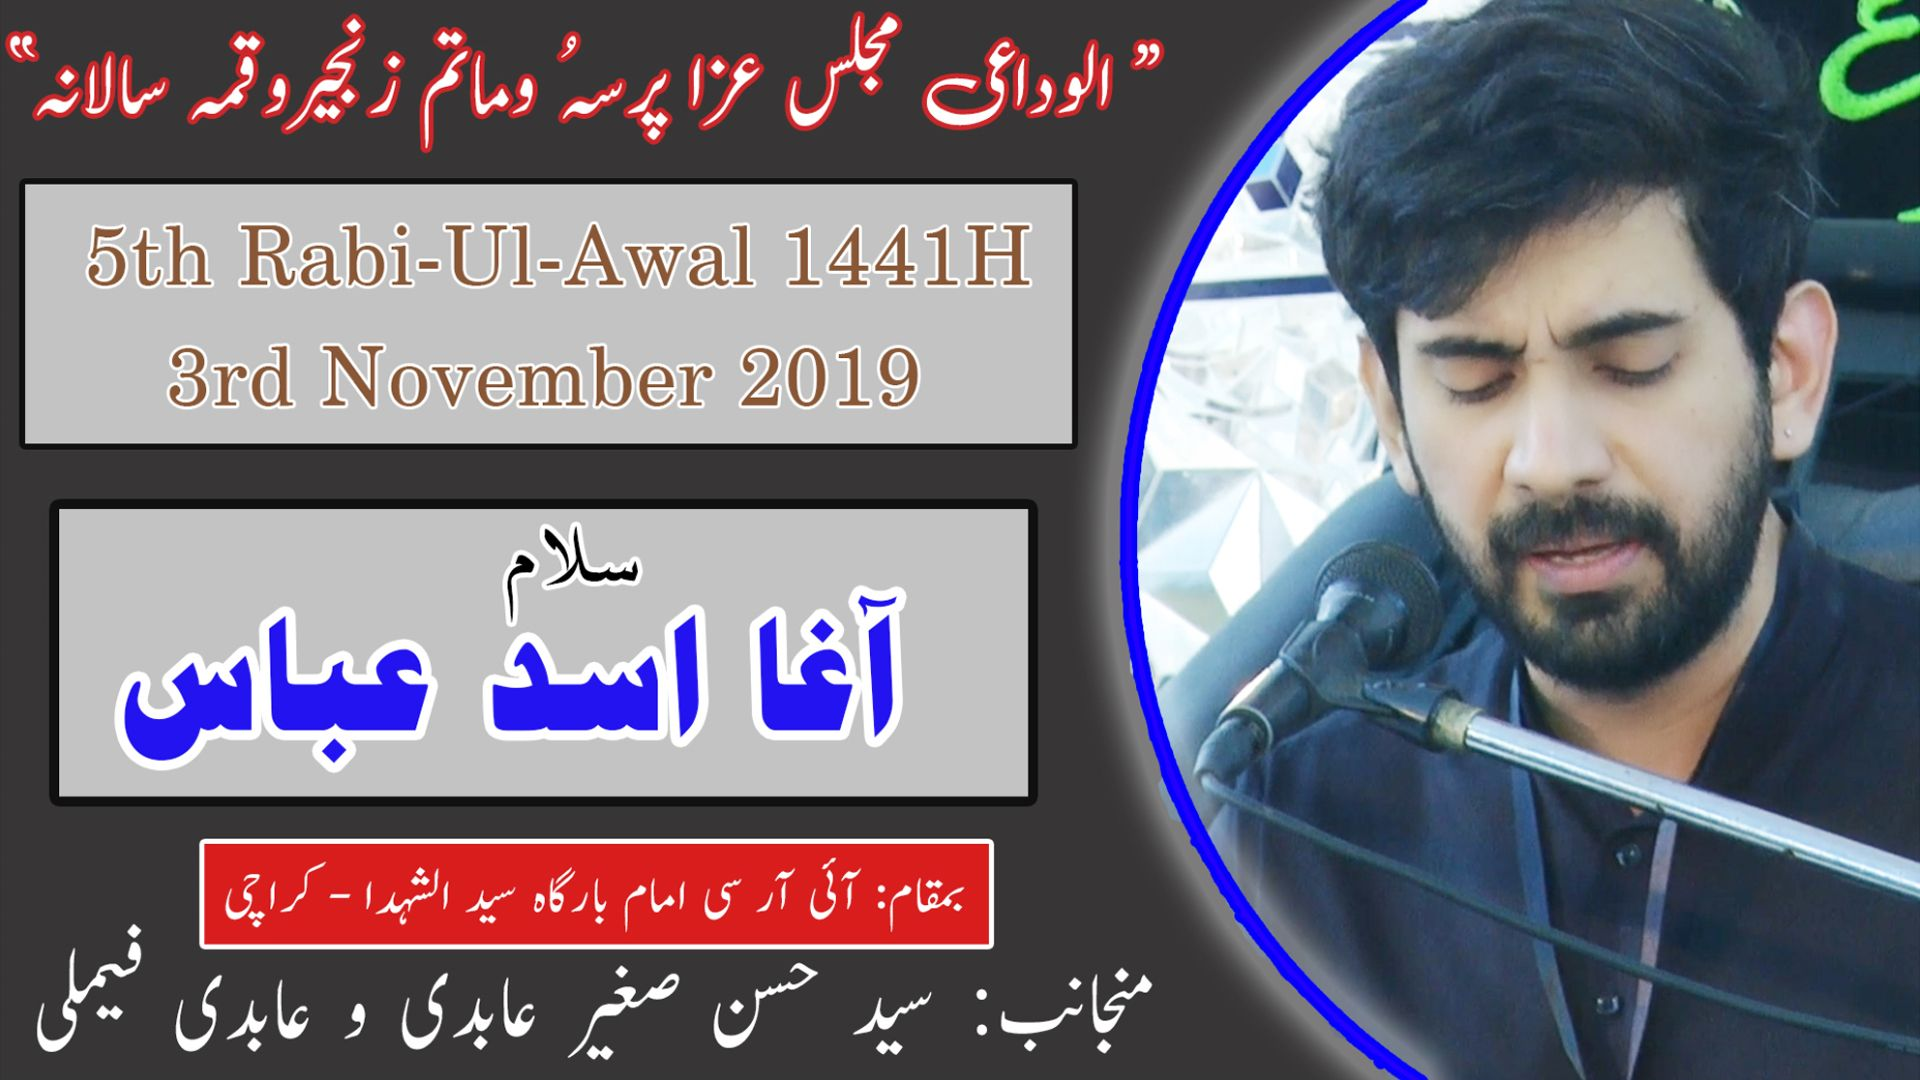 Salam | Agha Asad Abbas | 5th Rabi Awal 1441/2019 - Imam Bargah Islamic Research Center - Karachi